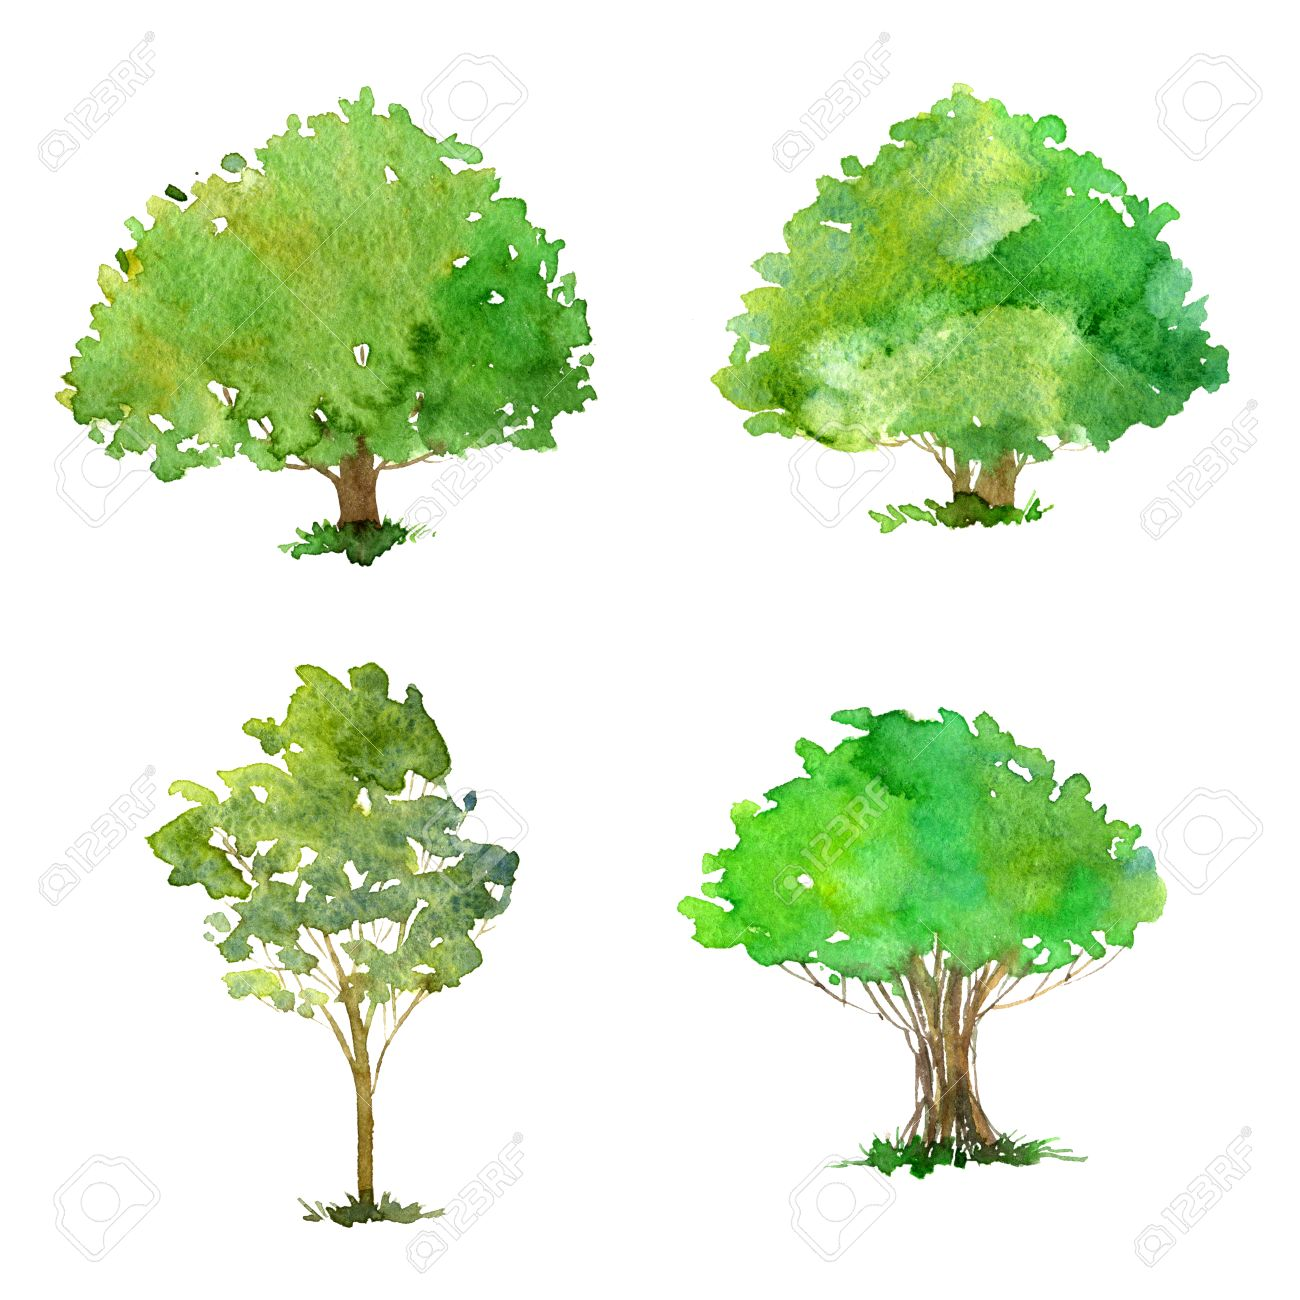 Set Of Trees Drawing By Watercolor, Bushes And Decidious, Green ... for Tree Drawing With Watercolor  300lyp